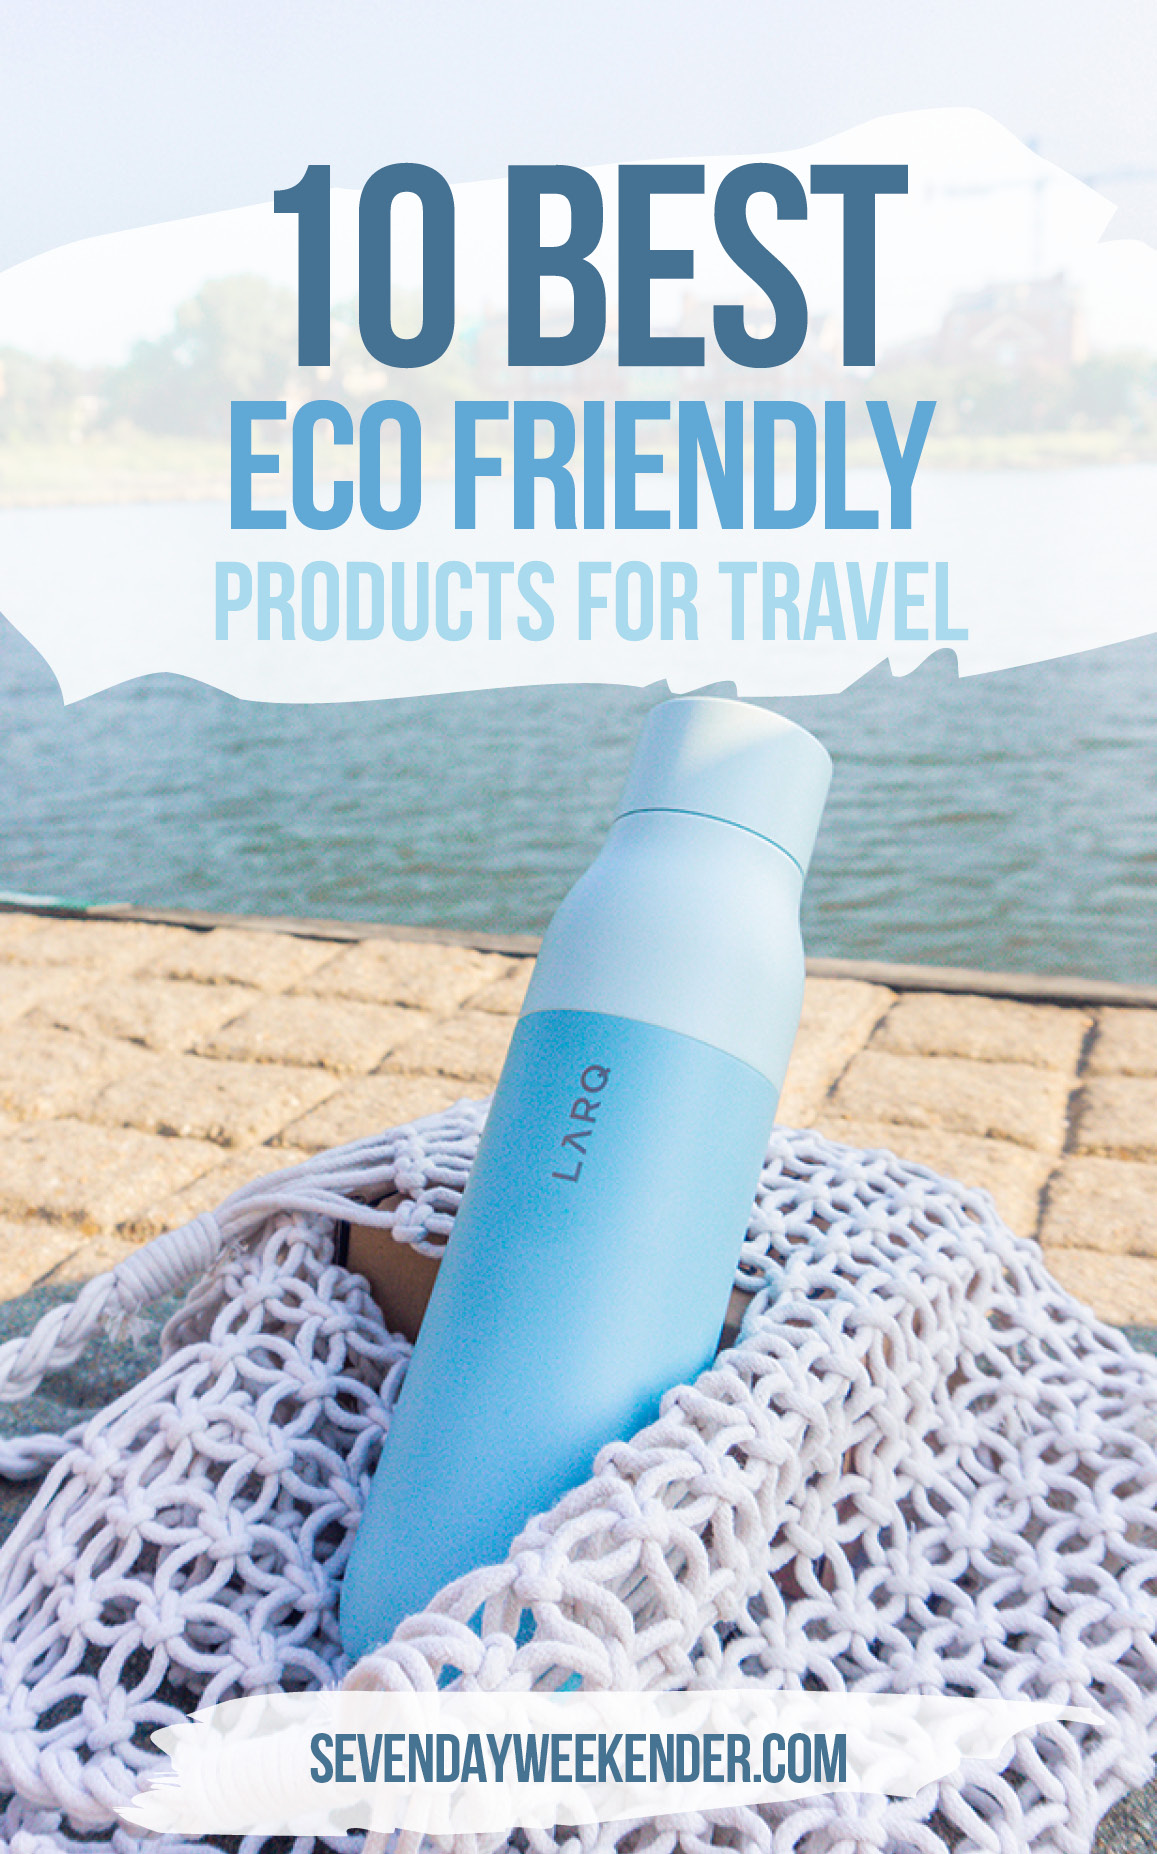 10 Best Eco Friendly Products for Travel